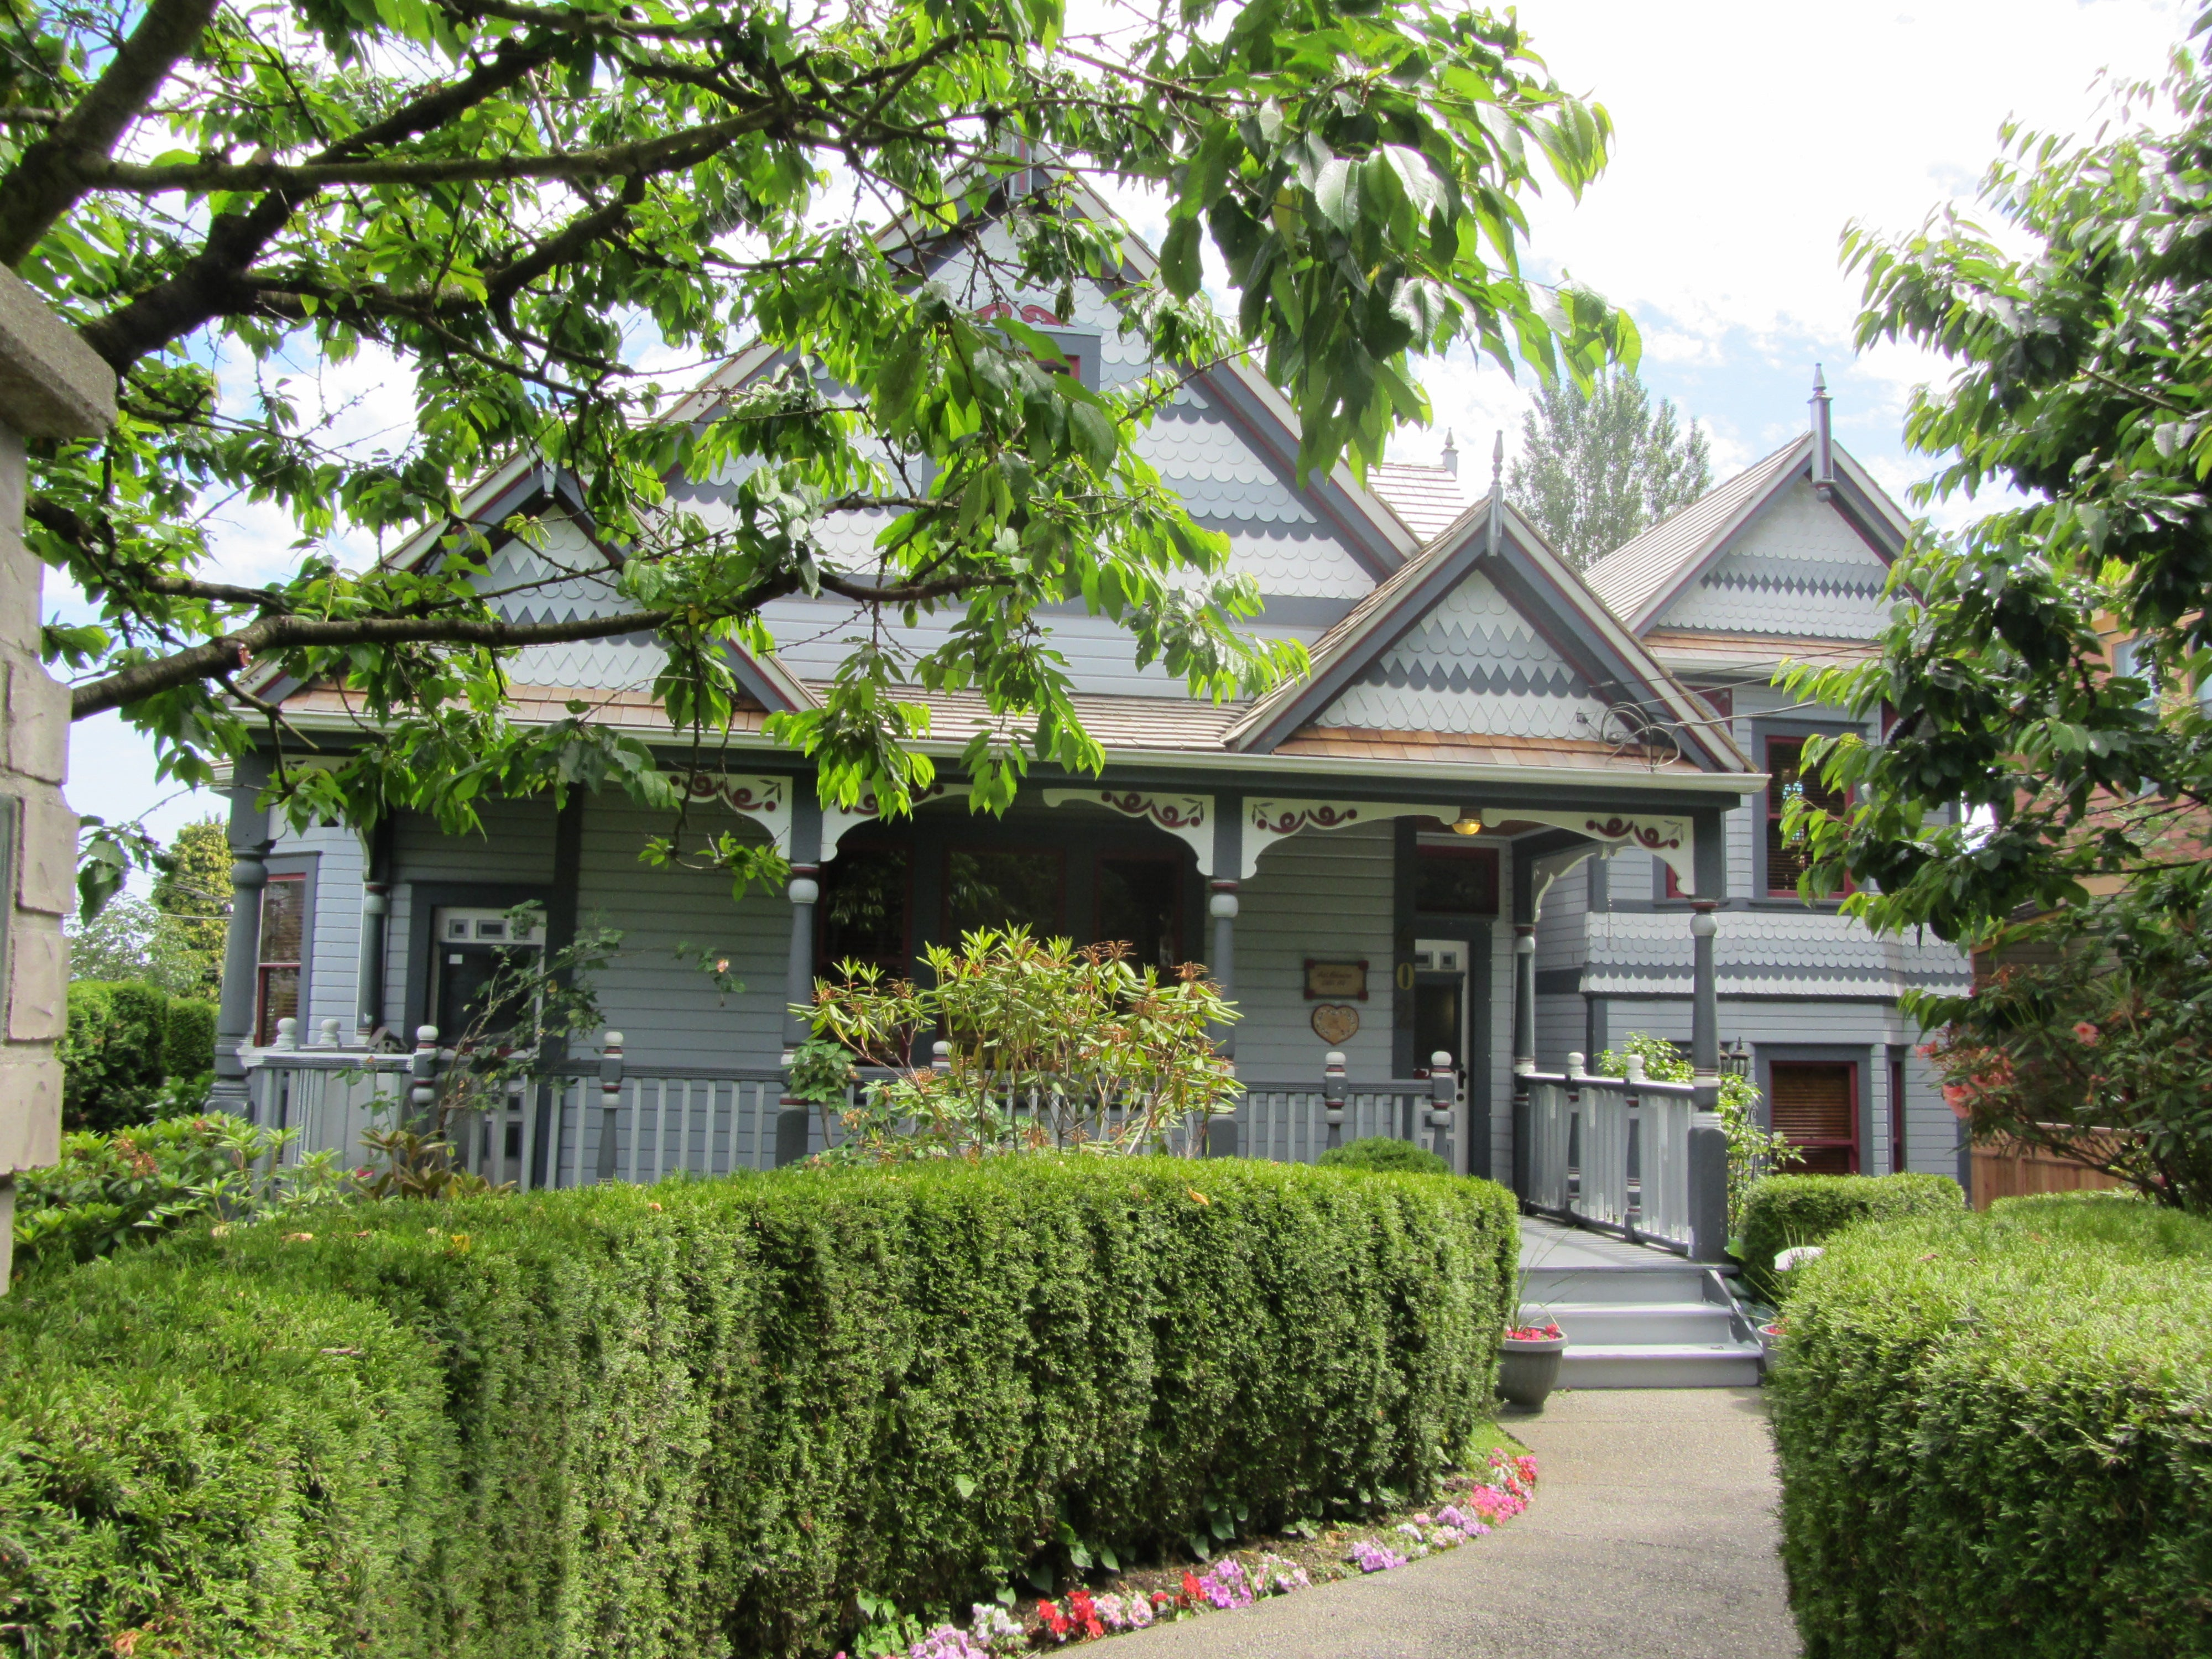 Heritage Home in the neighbourhood of Queen's Park, New Westminster BC